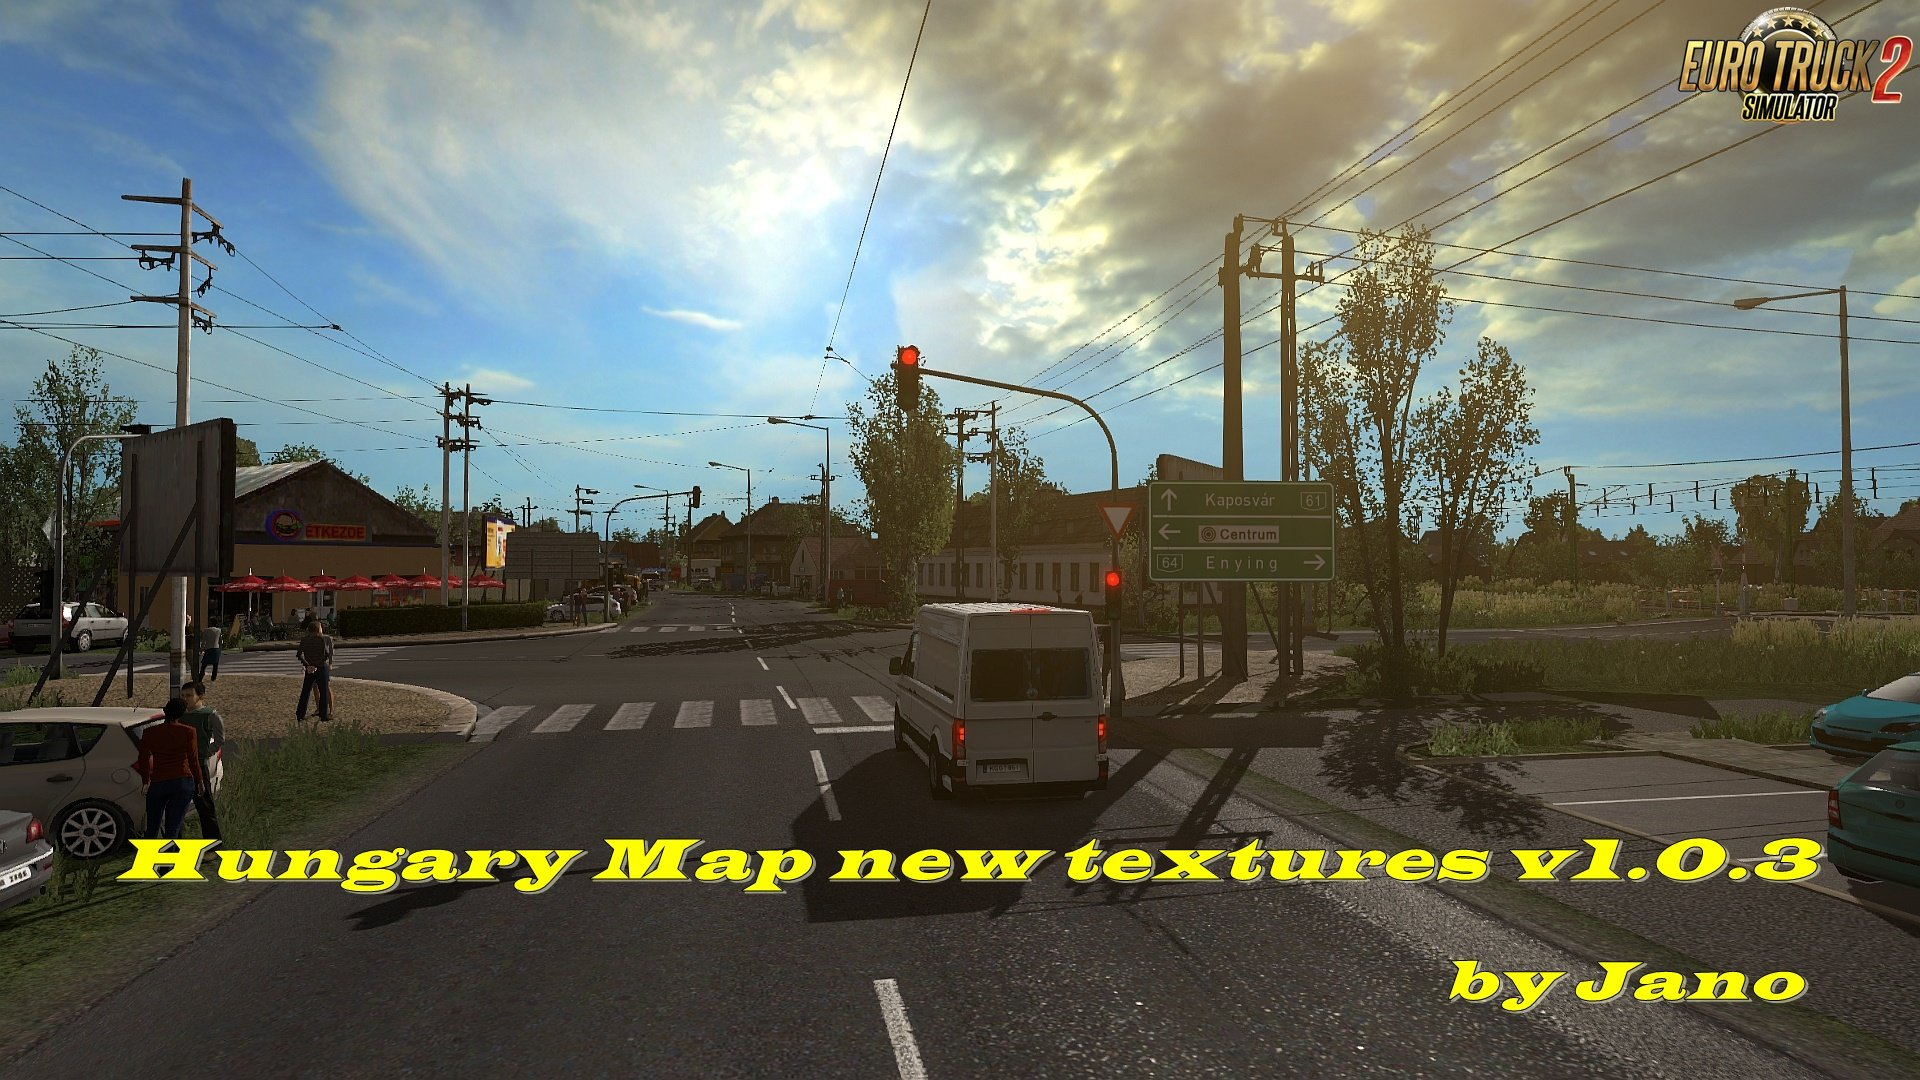 Hungary Map New Textures v1.0.3 by Jano